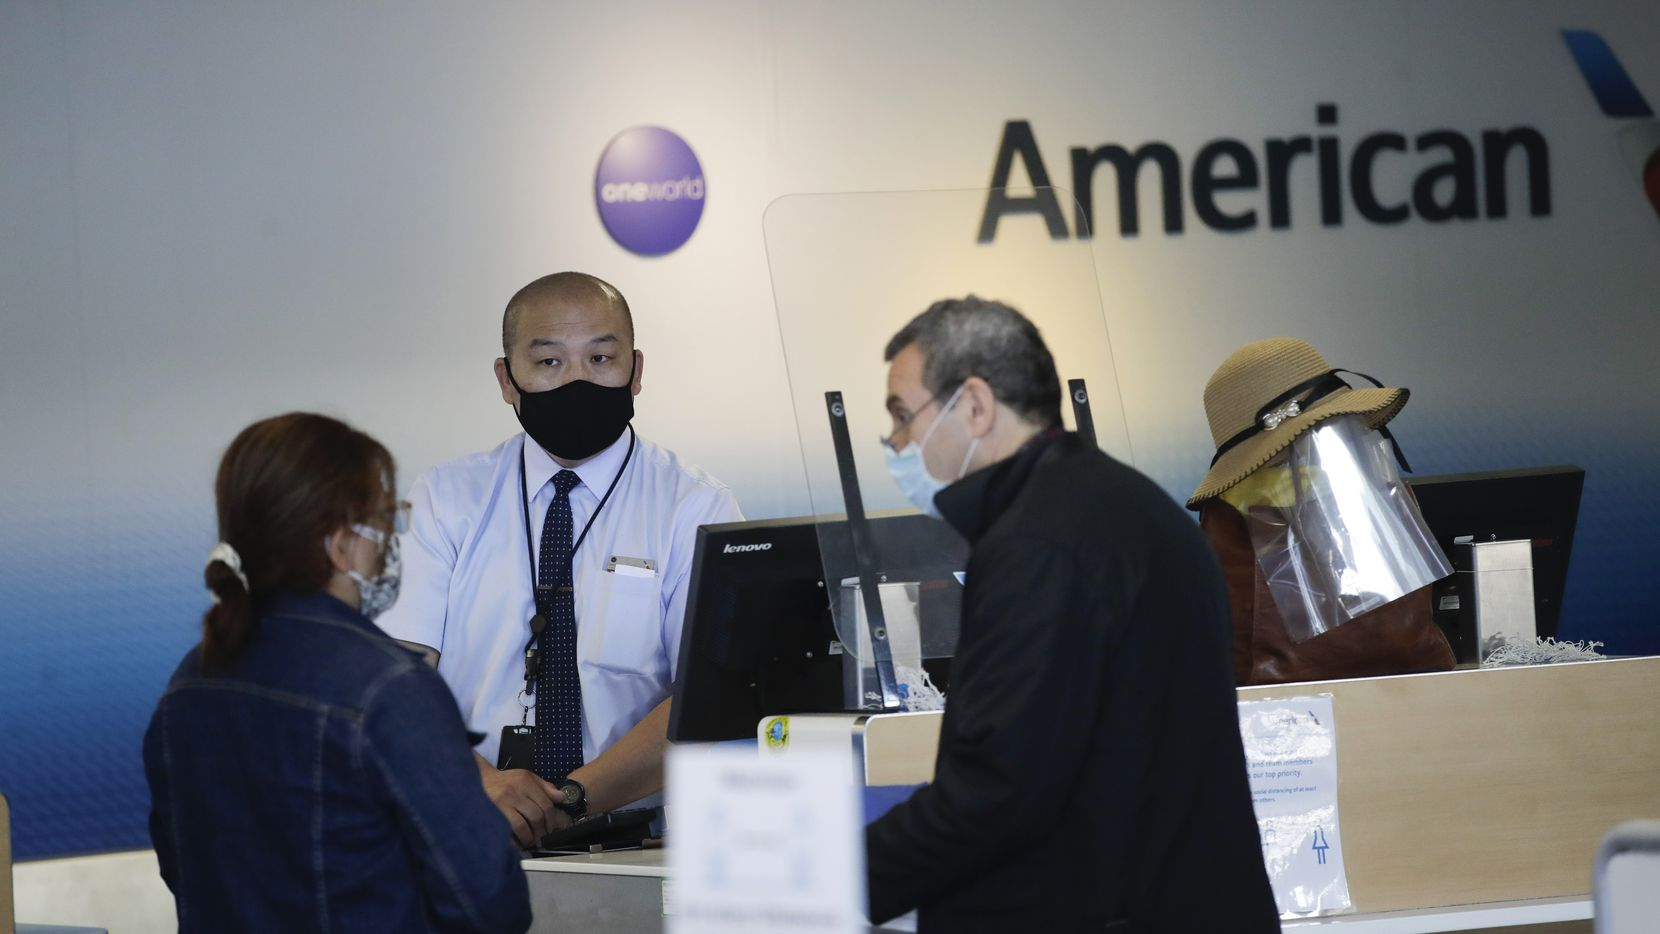 Travelers check in at the American Airlines terminal at the Los Angeles International Airport Thursday, May 28, 2020, in Los Angeles.